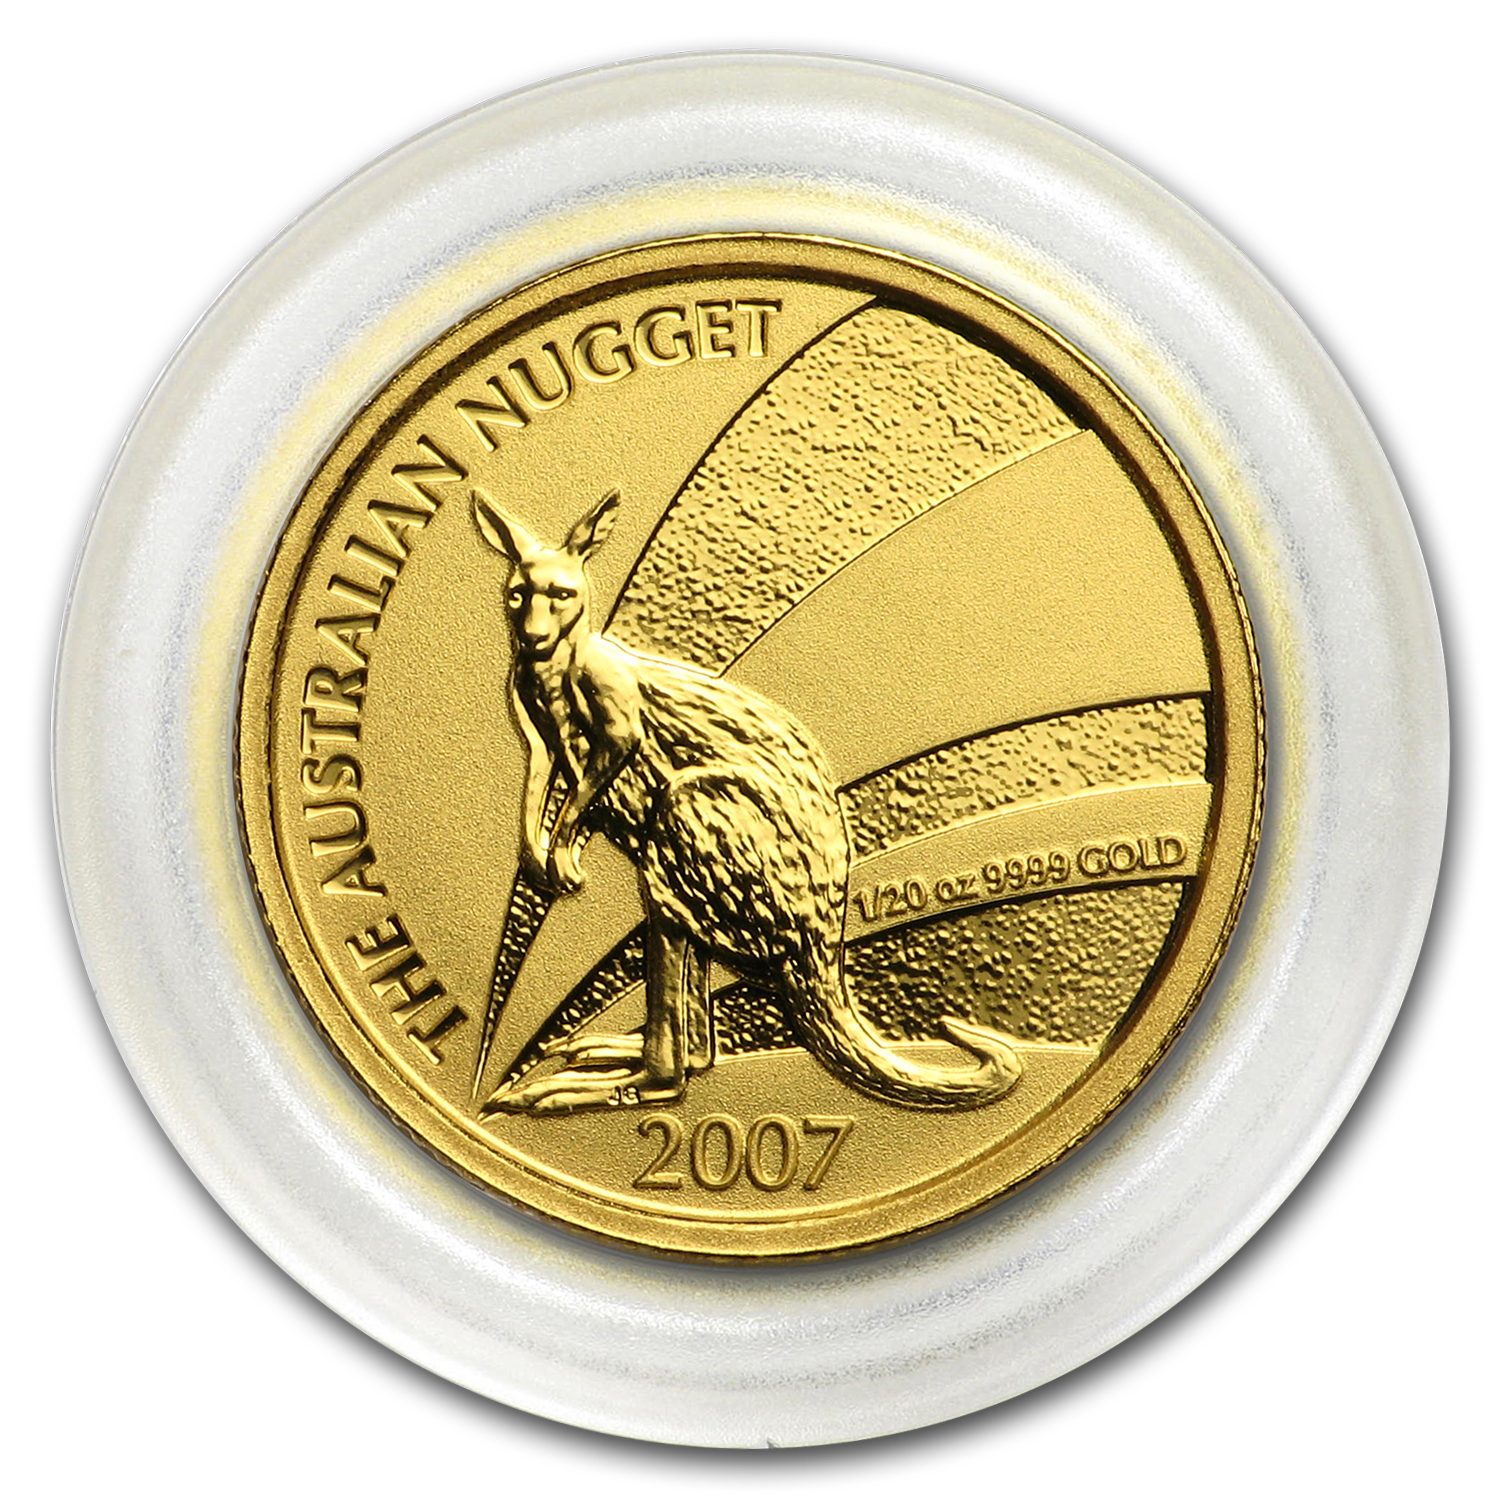 2007 Australia 1/20 oz Gold Nugget